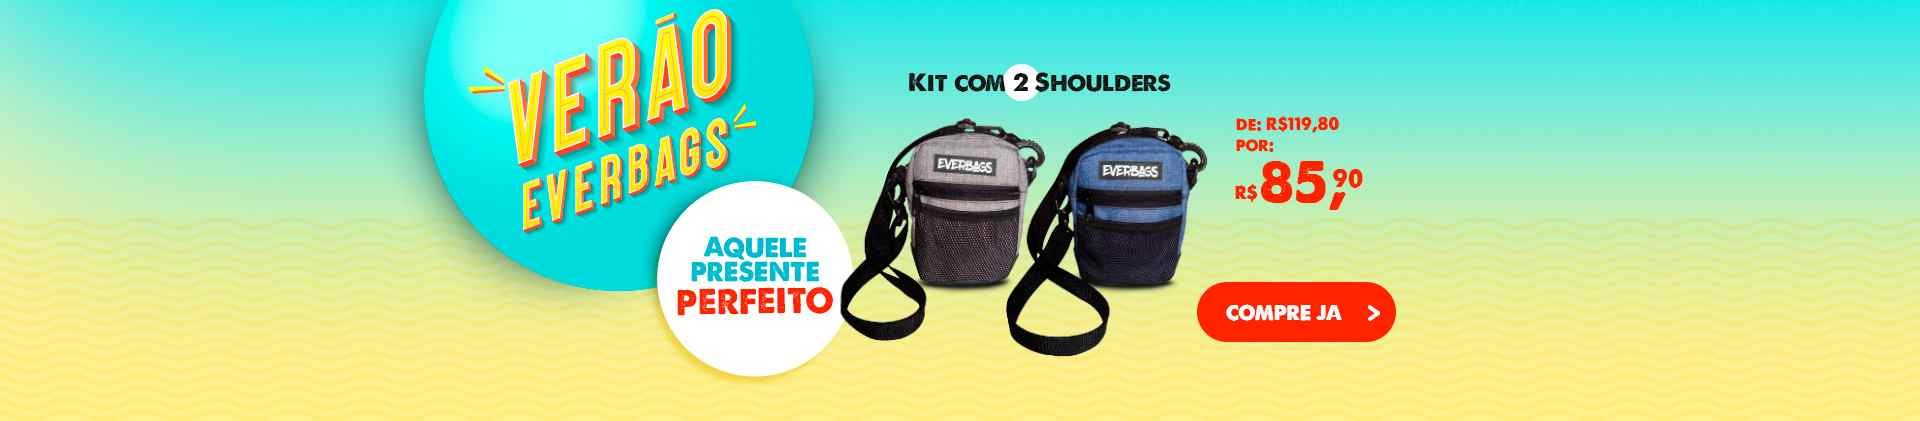 verão Everbags - Shoulder Bag